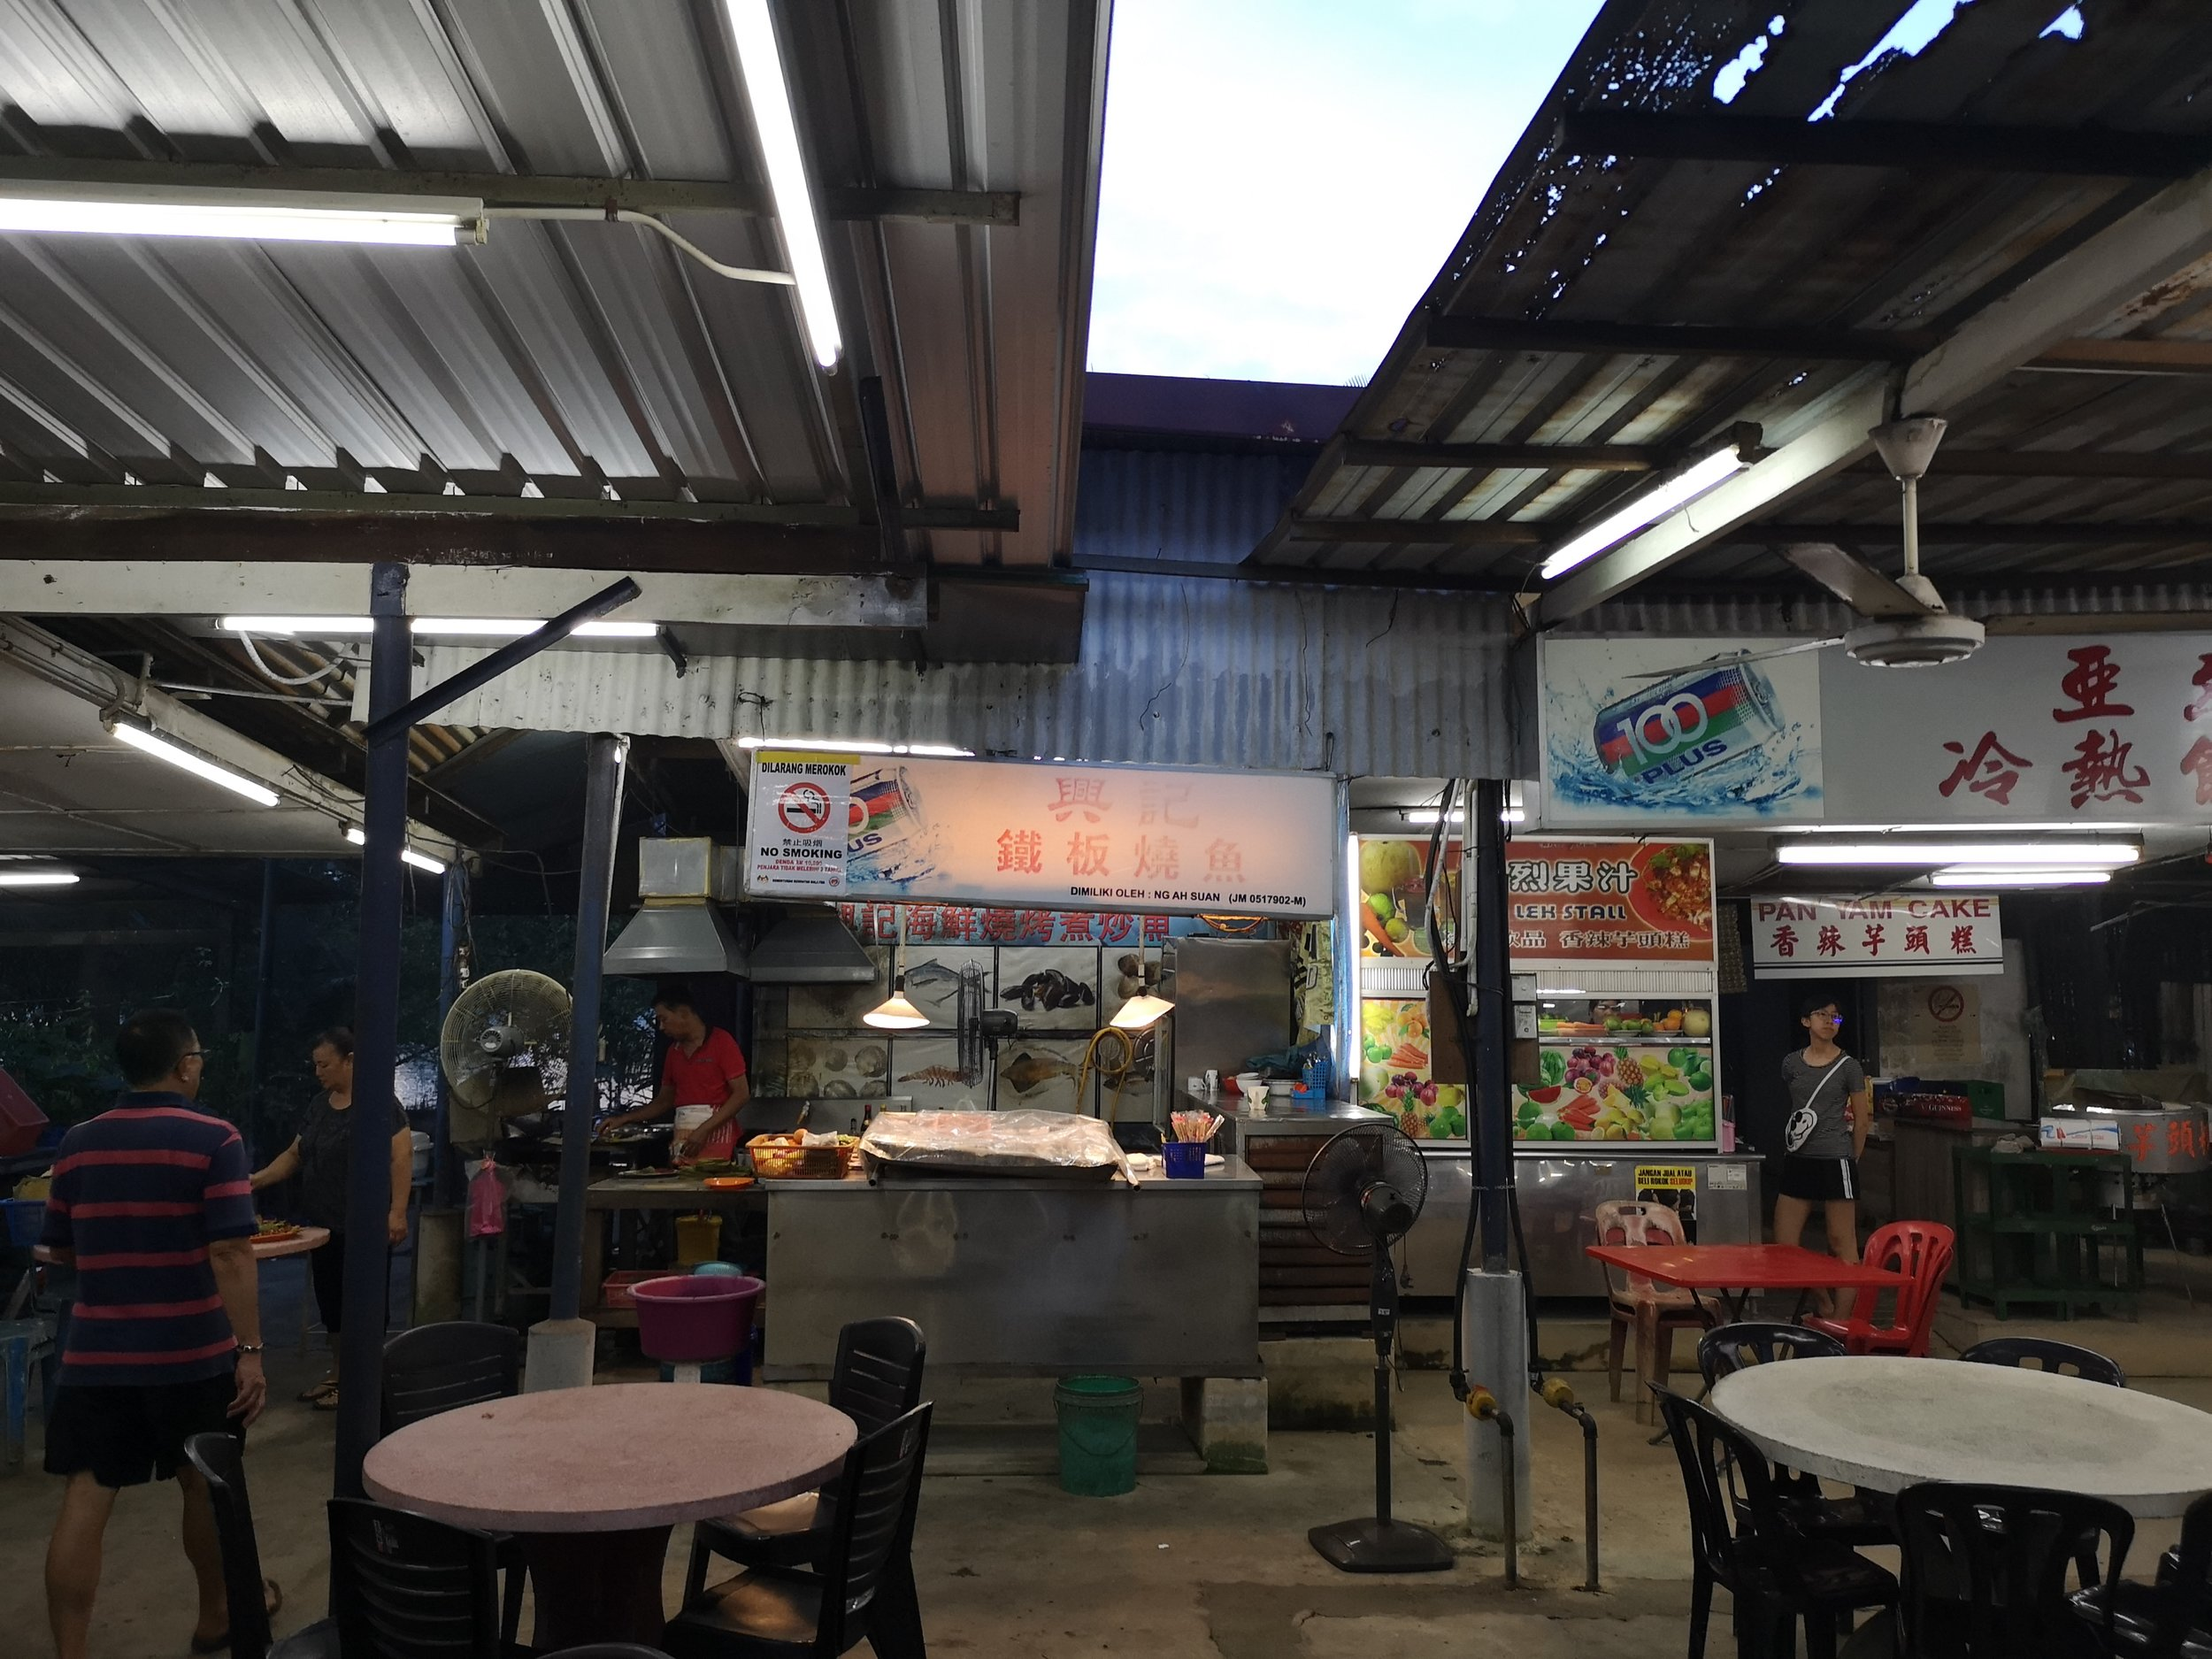 The Delicious Ikan Bakar Stall, For the Interested